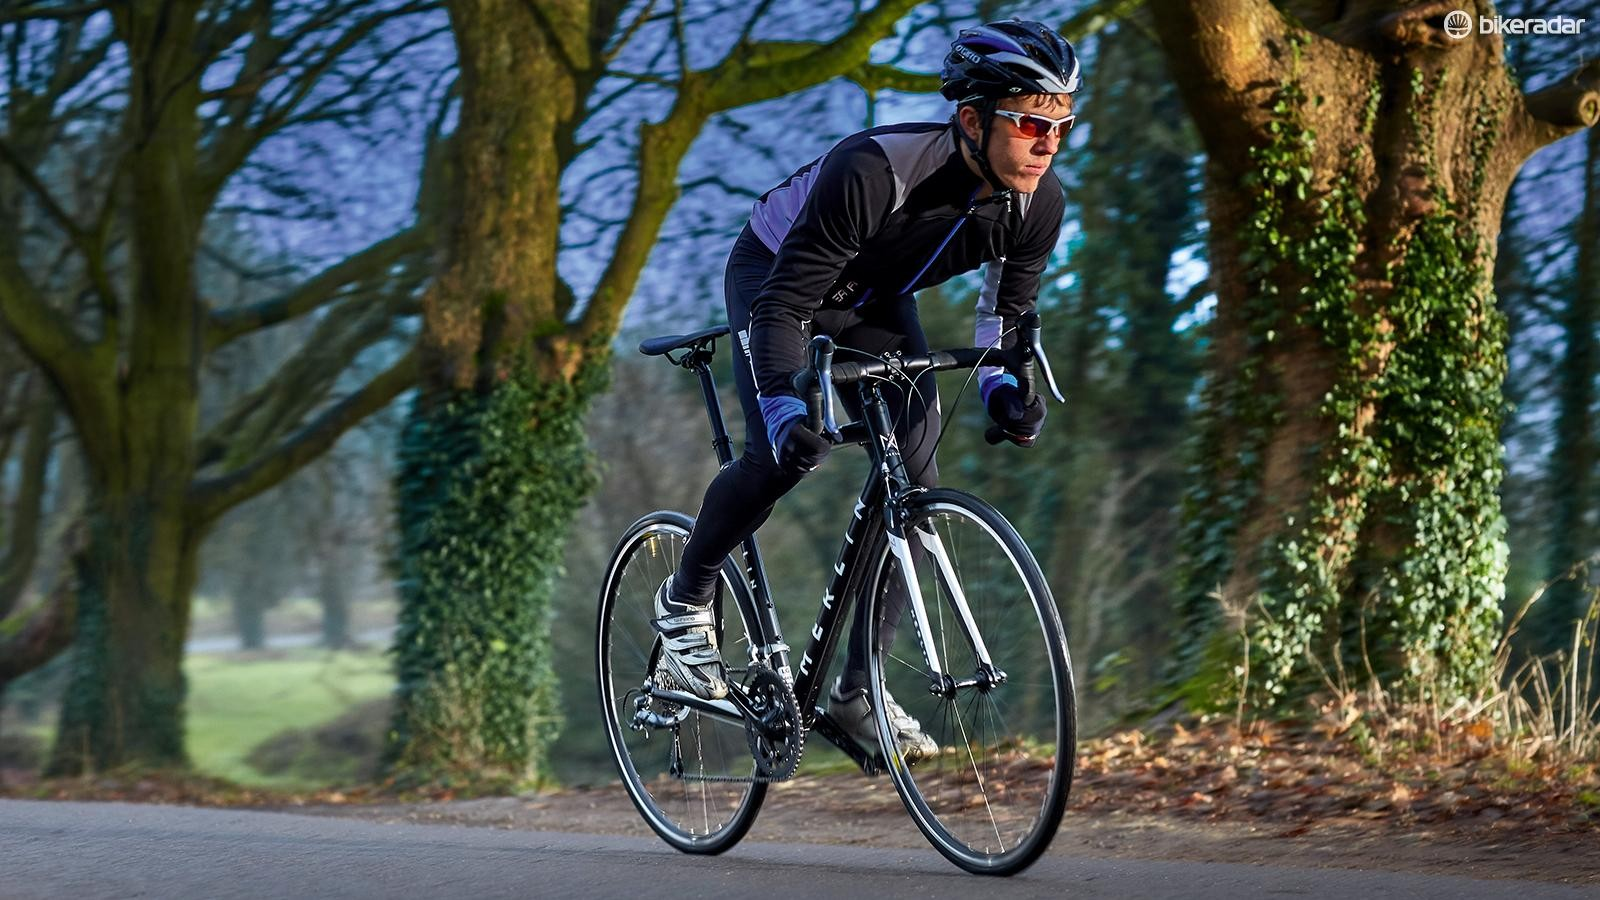 Merlin's choice of saddle and bar tape was first rate for a bike at this price